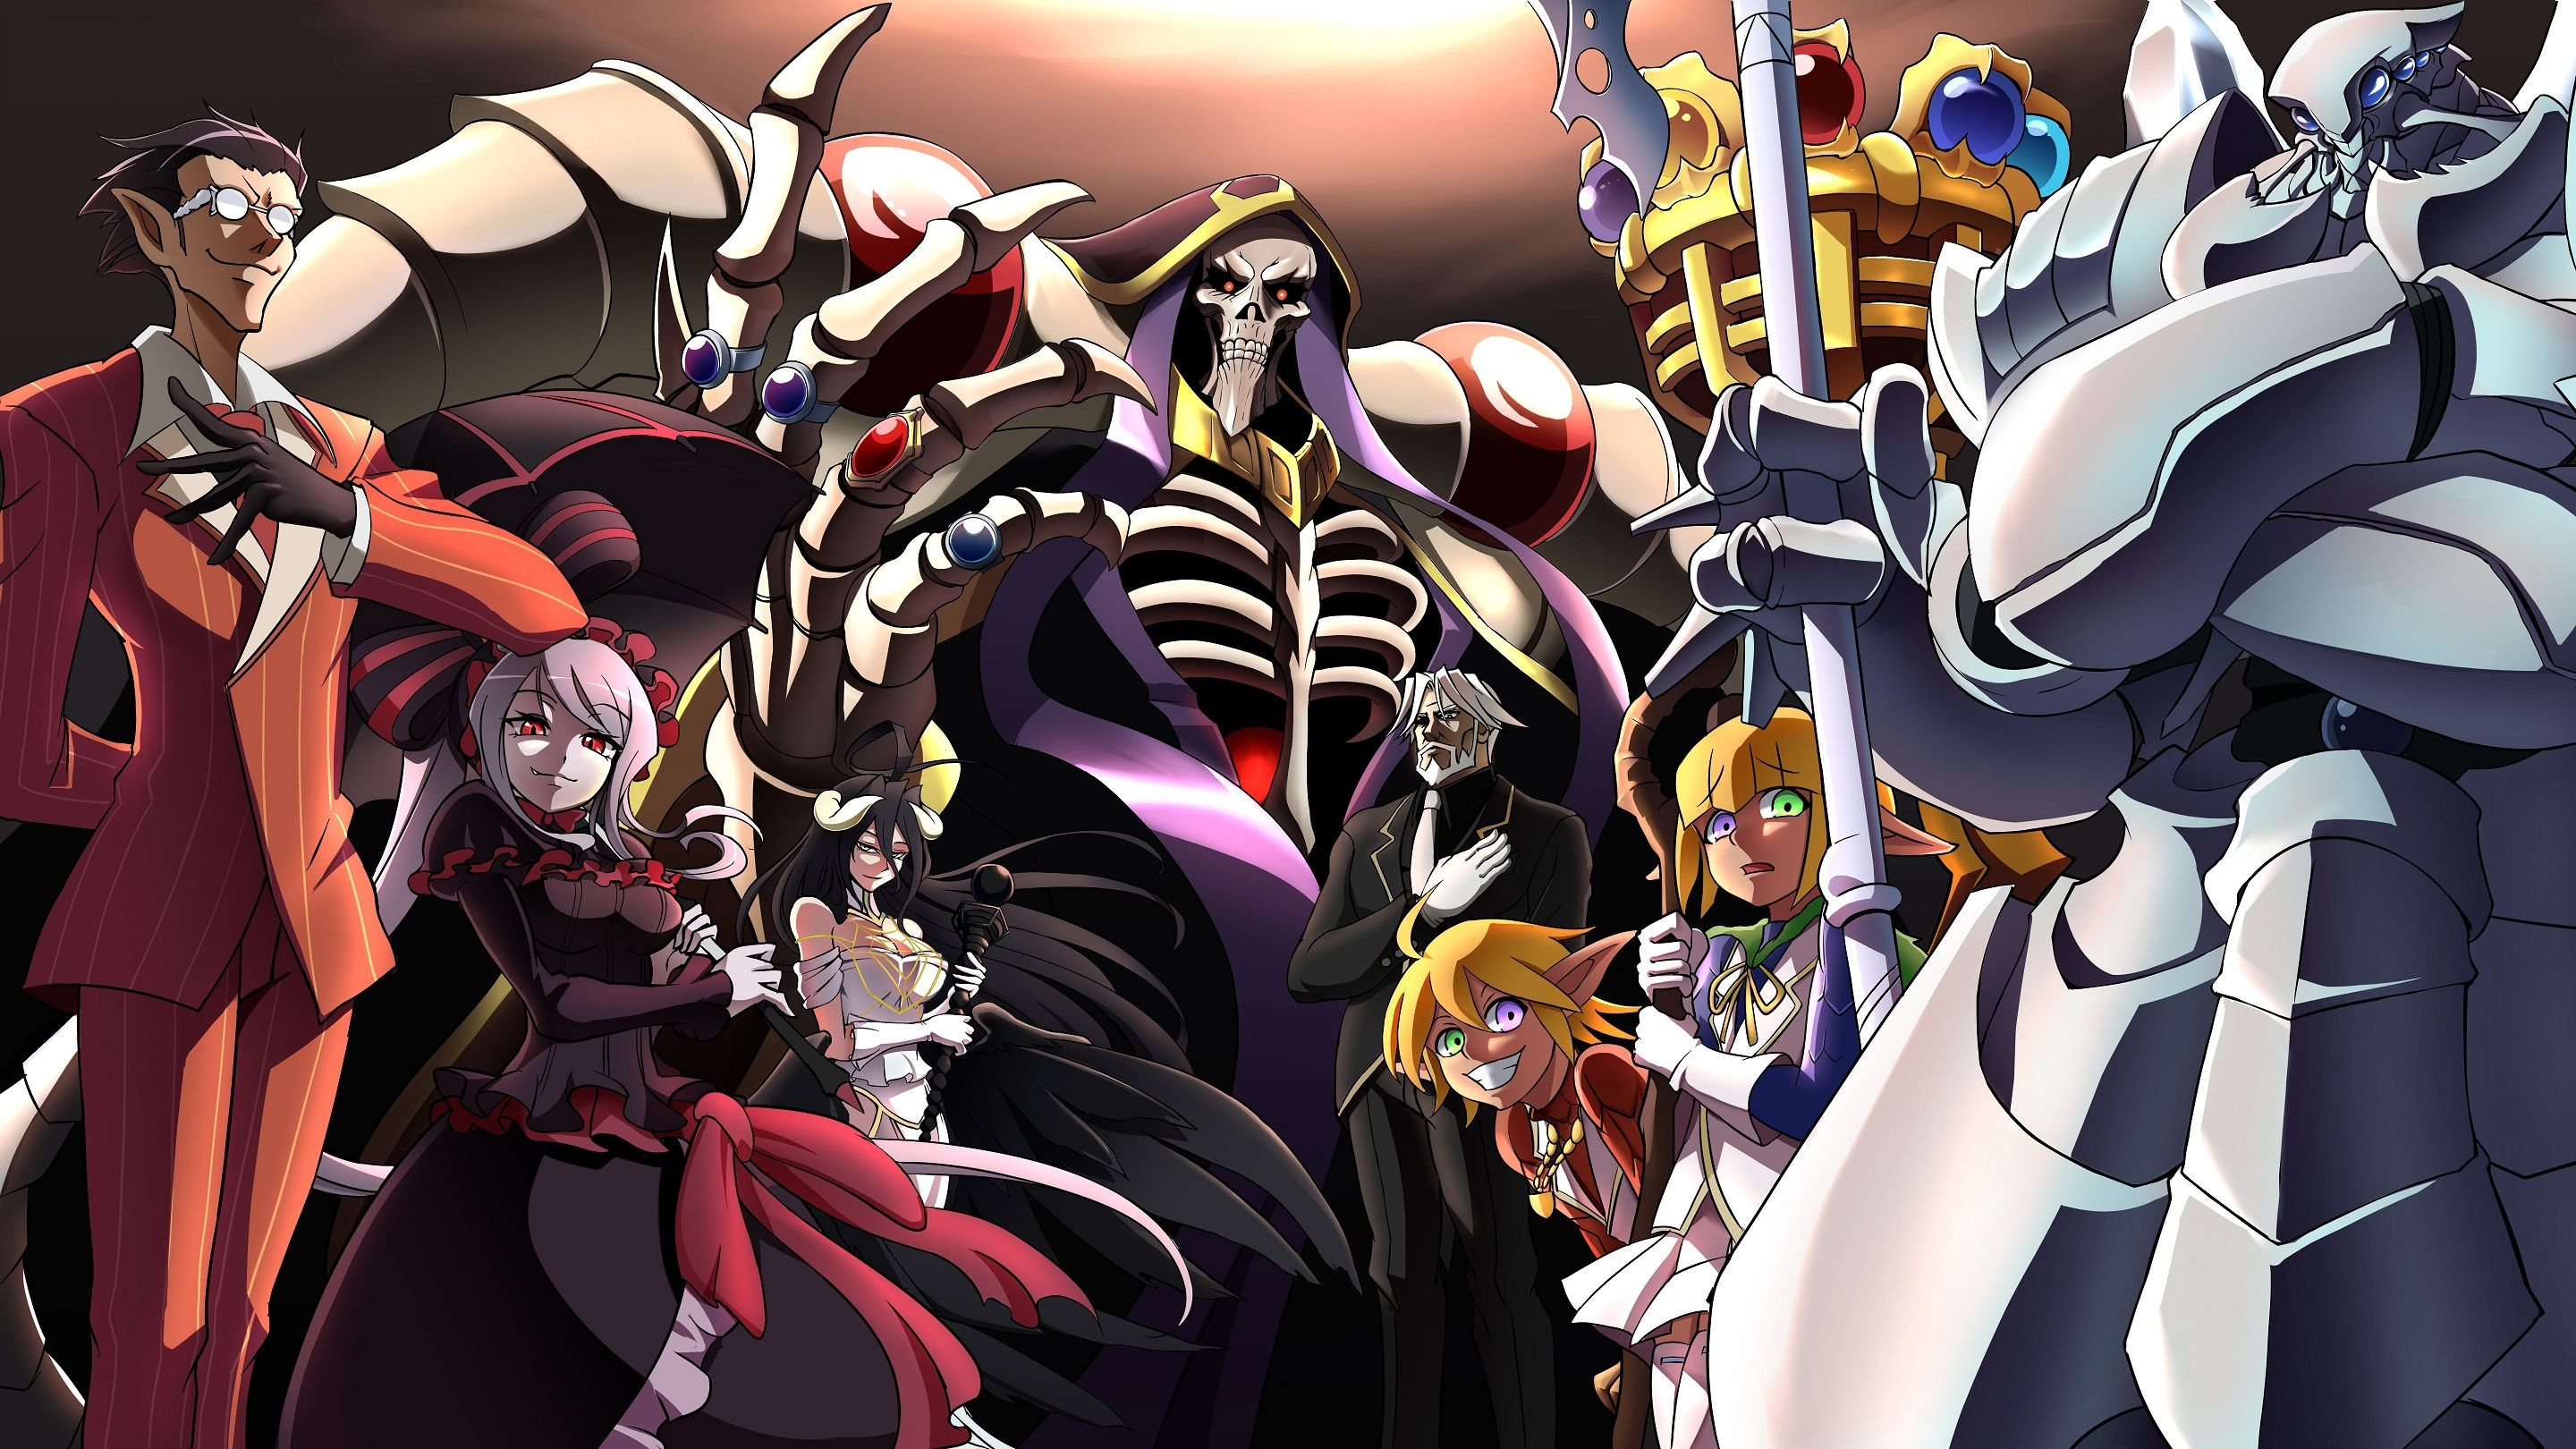 Res: 2880x1620, Anime - Overlord Overlord (Anime) Demiurge (Overlord) Shalltear Bloodfallen  Albedo (Overlord